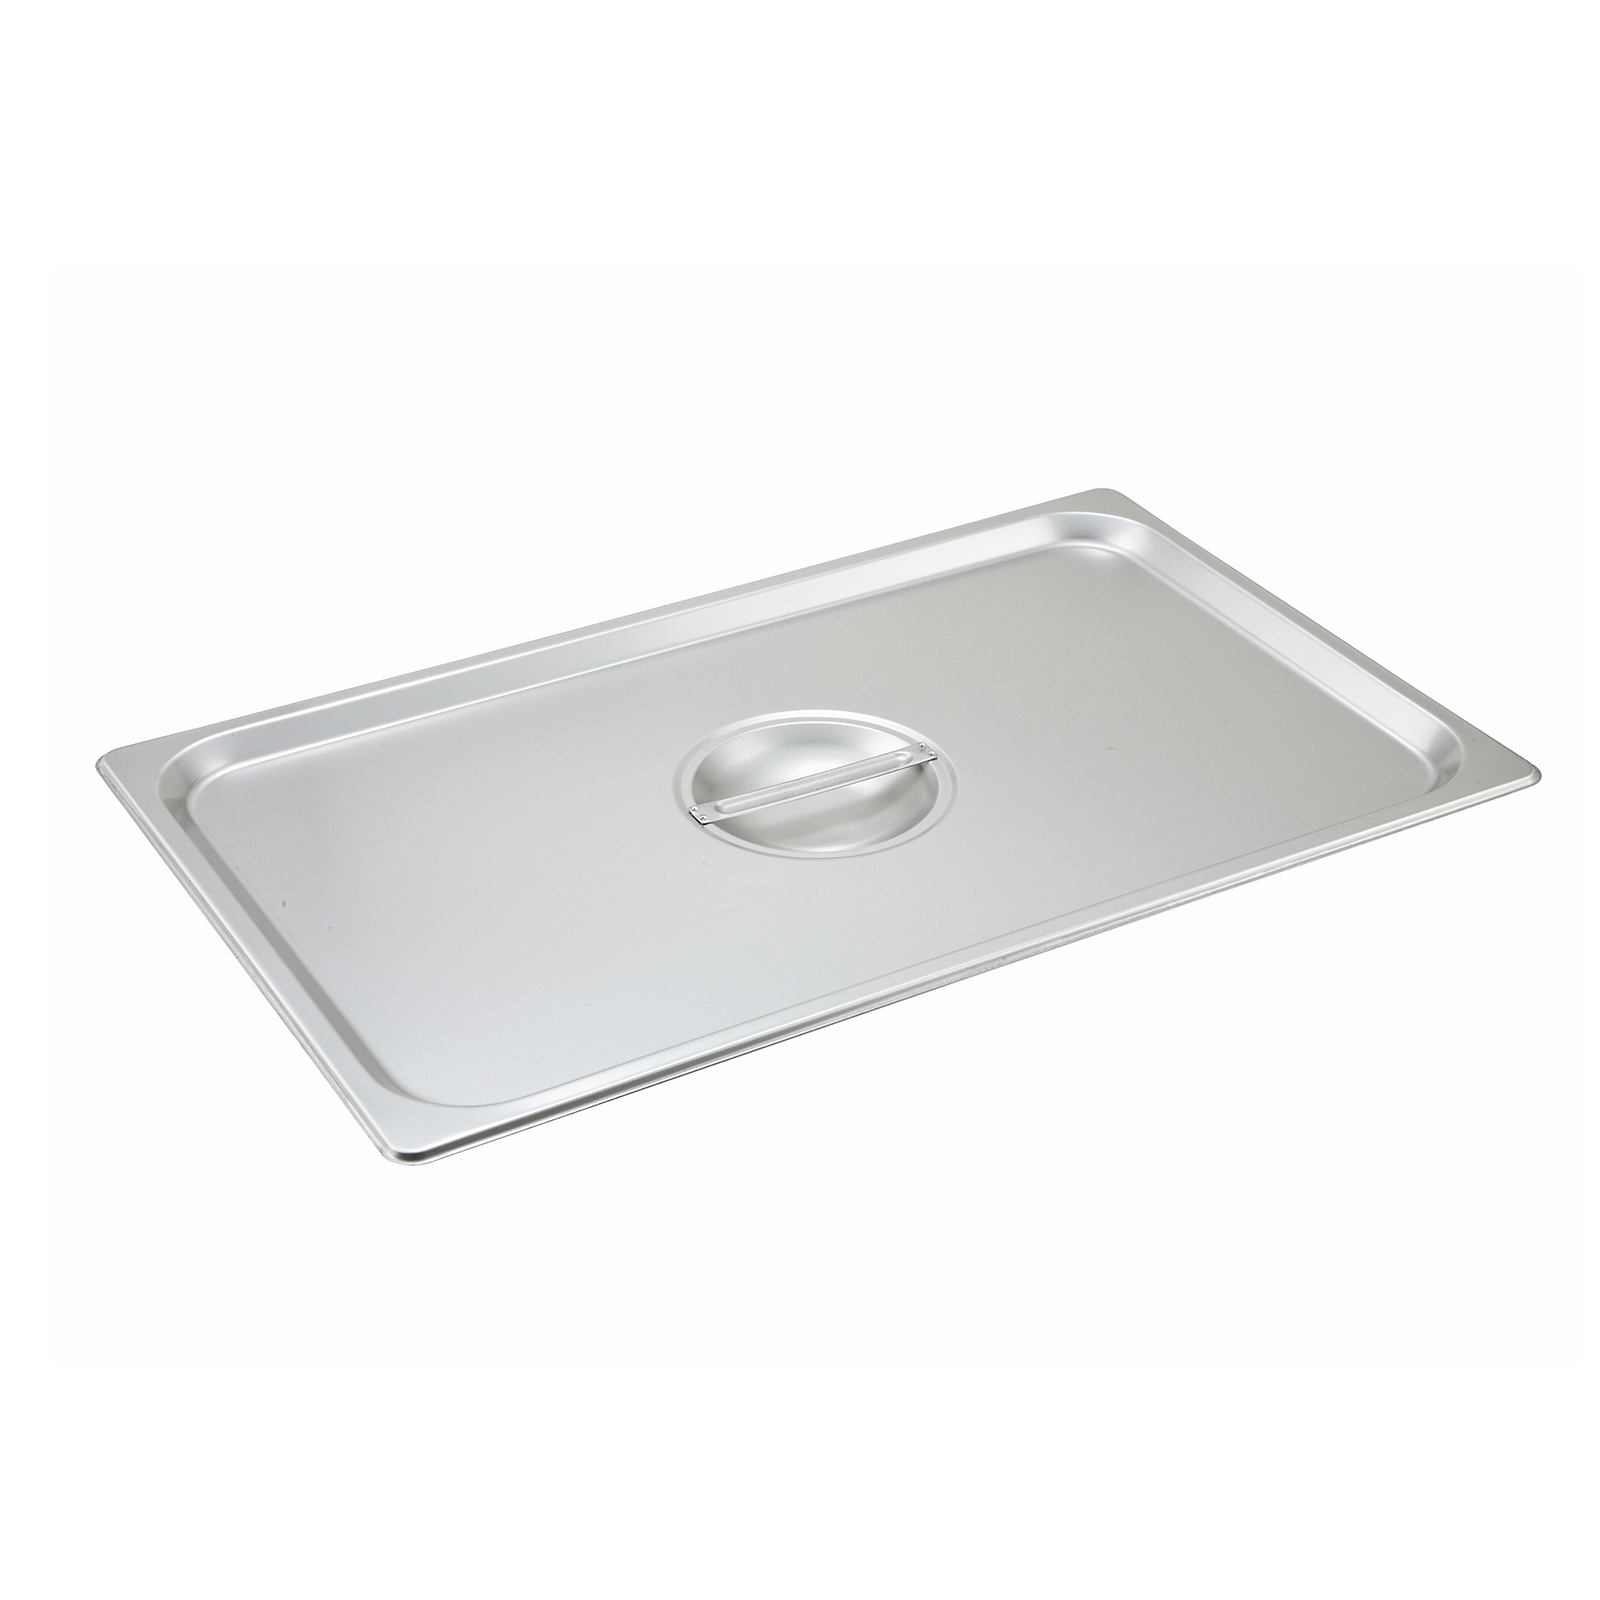 Winco SPSCF steam table pan cover, stainless steel